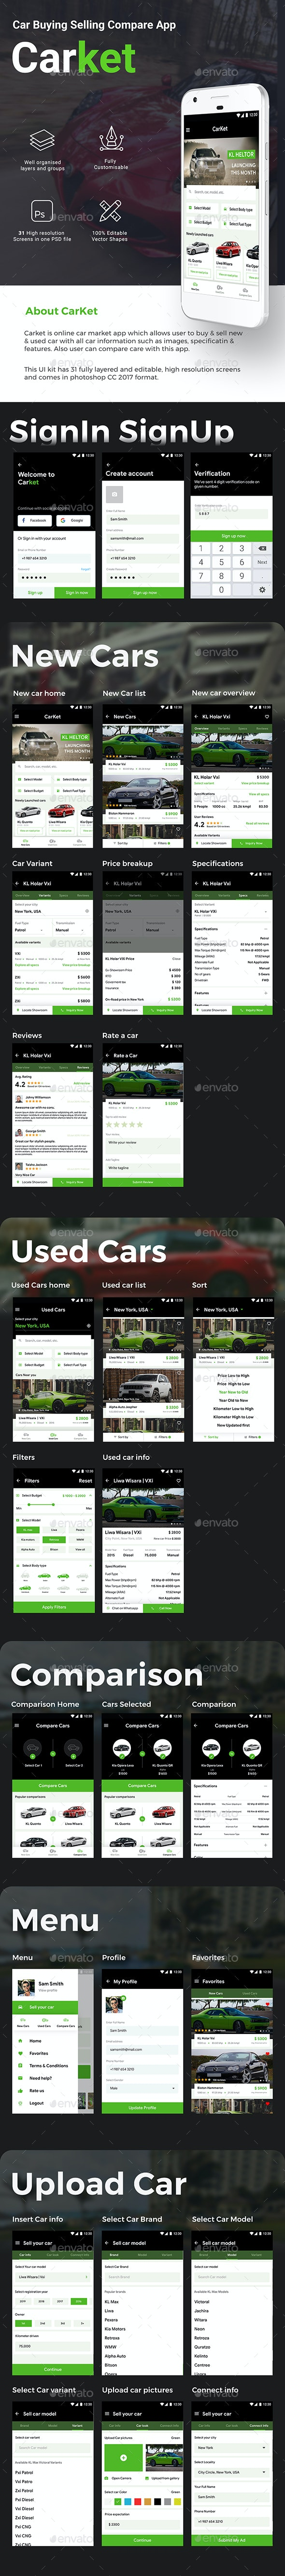 Online Car Buying, Selling & Comparison App UI Kit | Carket - User Interfaces Web Elements